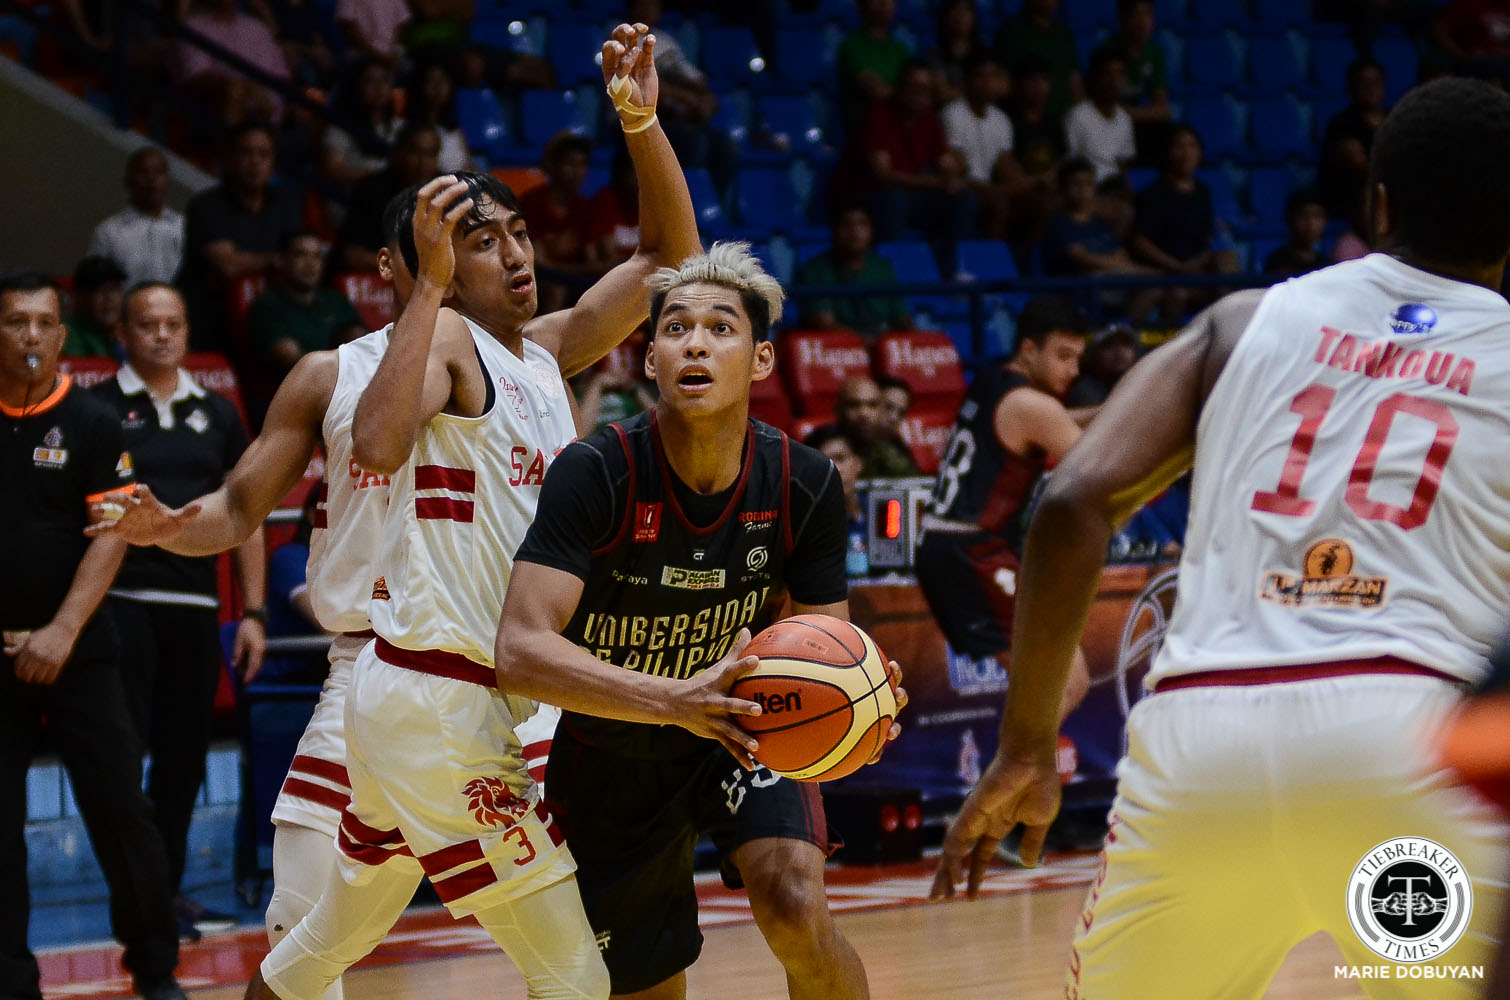 Tiebreaker Times Ricci Rivero laments foul calls as his UP debut in Filoil ends early Basketball News UP  UP Men's Basketball Ricci Rivero 2019 Filoil Flying V Preseason Cup